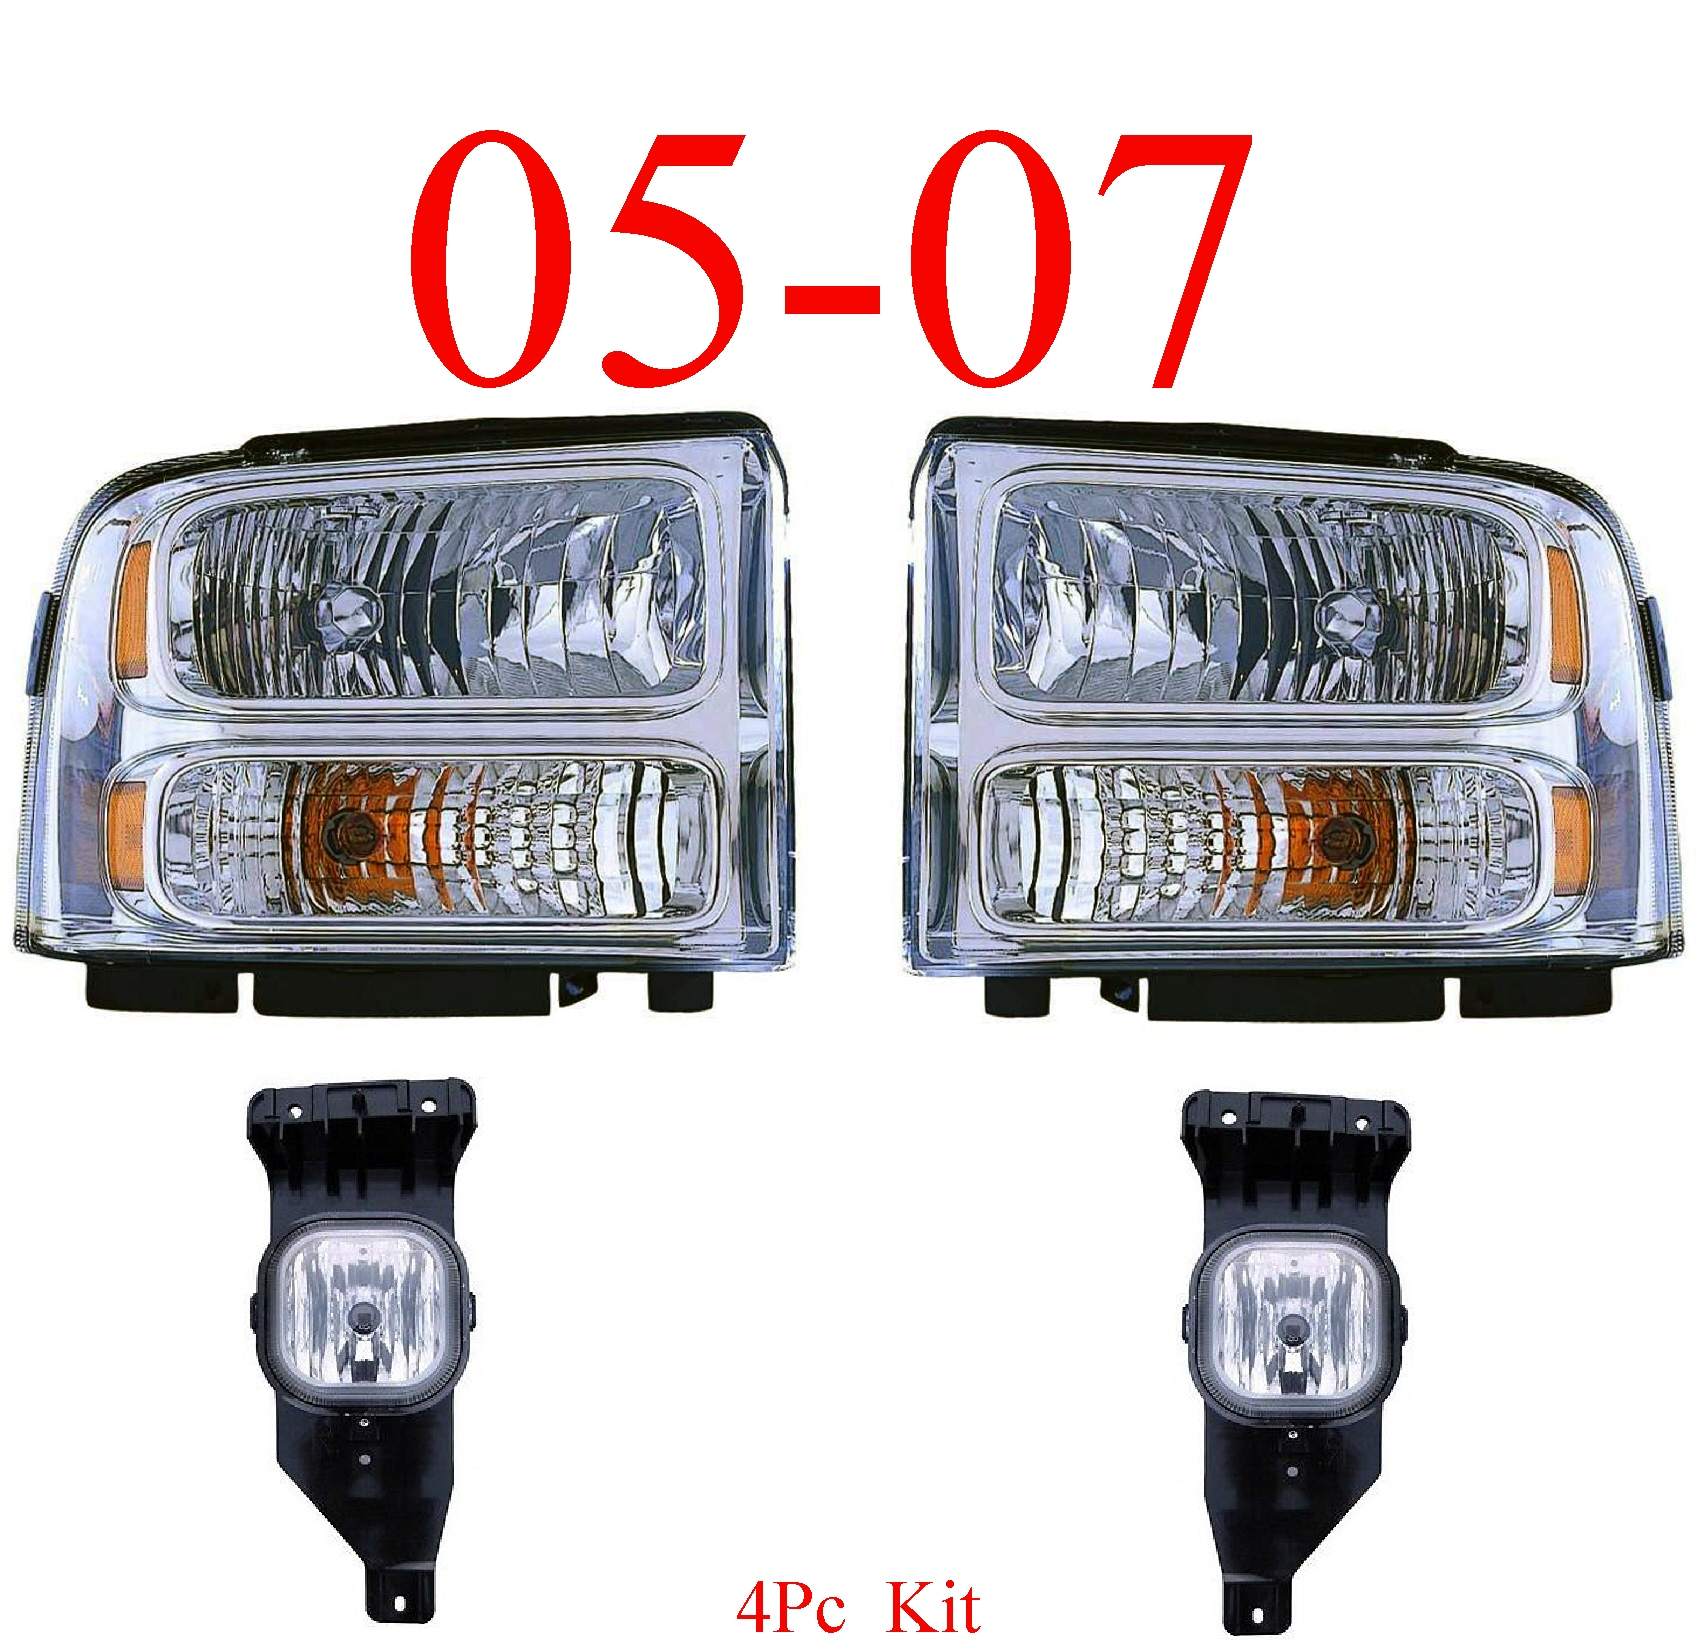 05 Ford Excursion 4Pc Chrome Head Light & Fog Light Kit